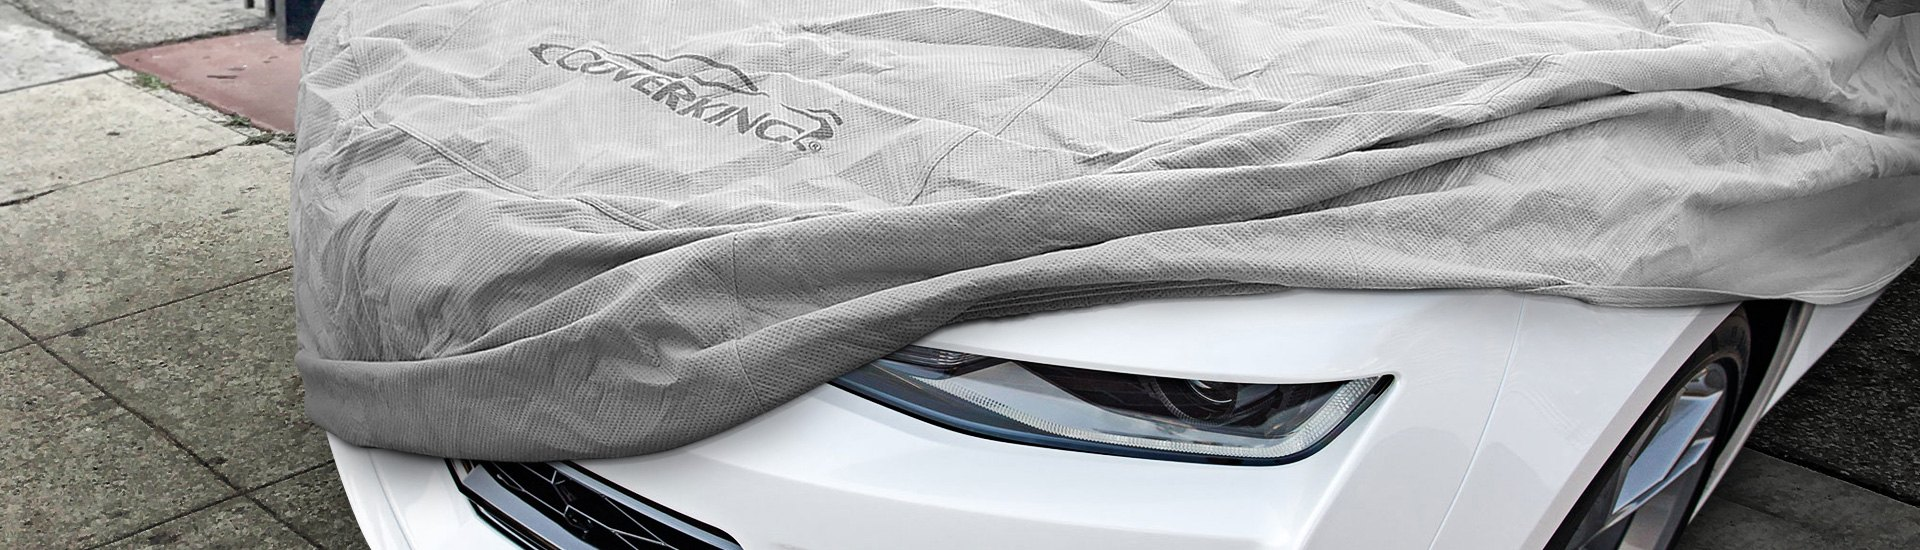 Car Covers Shopping Guide